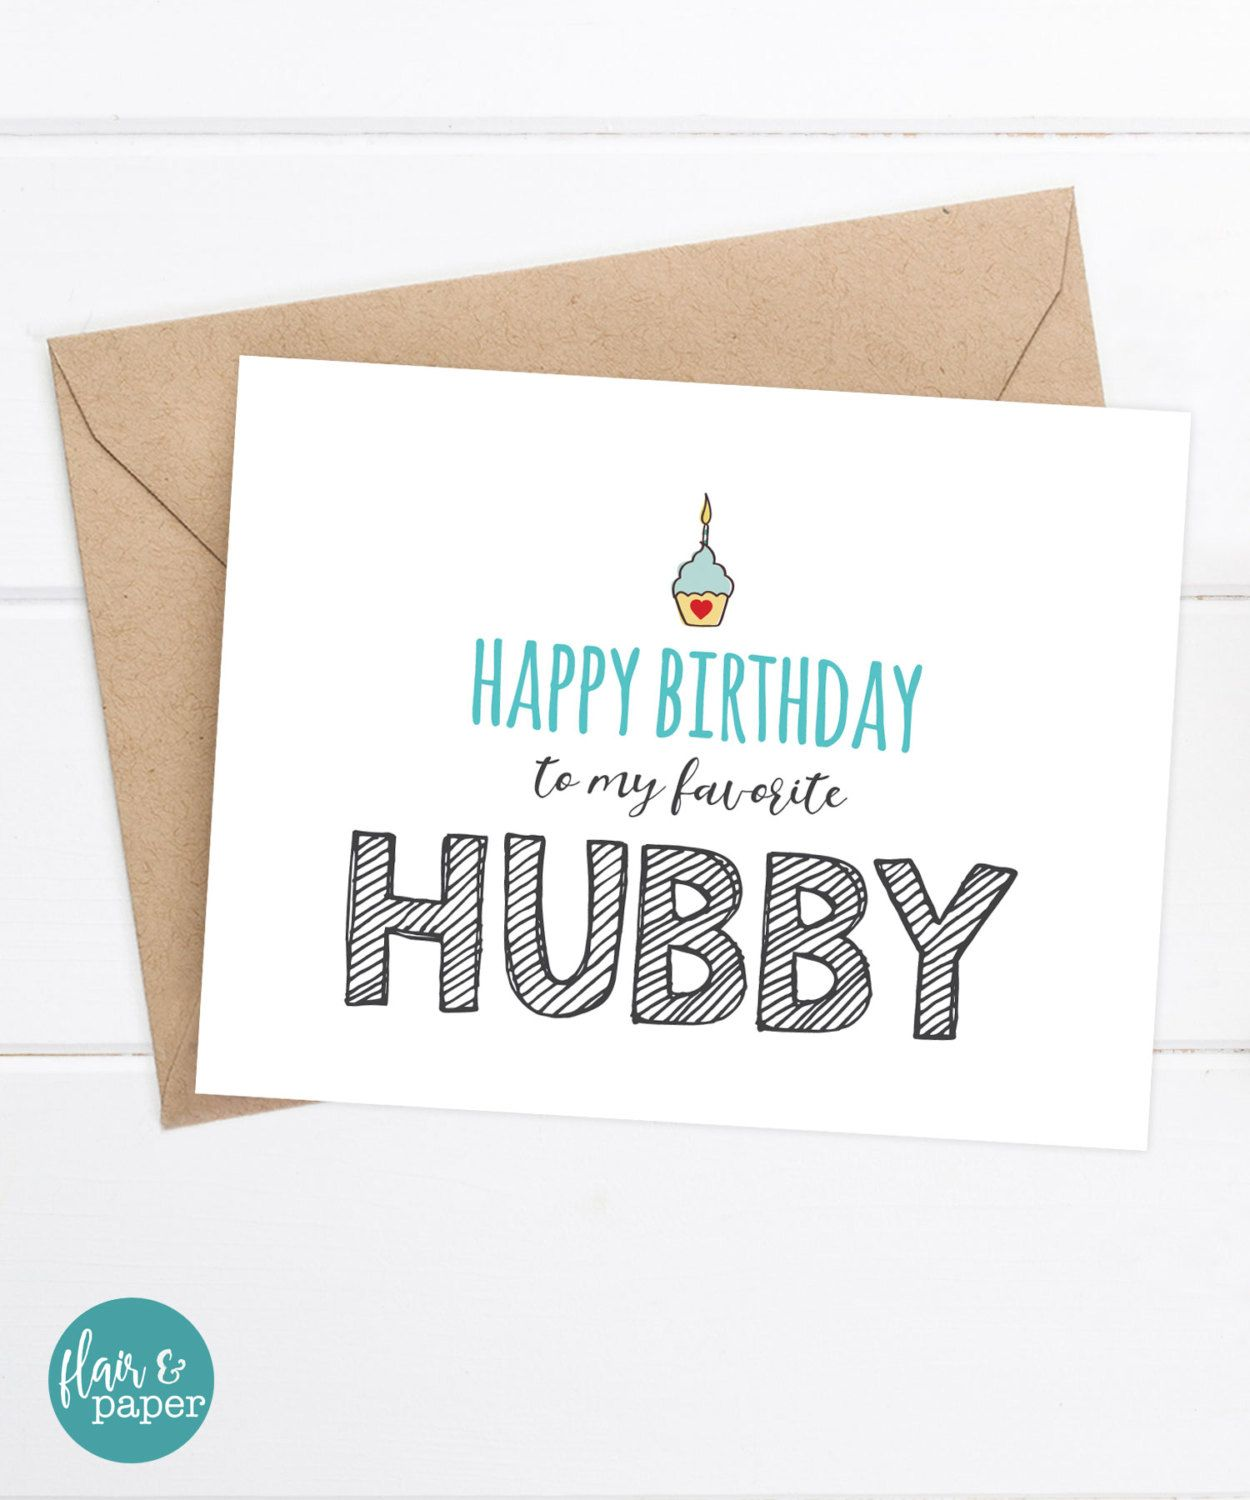 Funny Husband Birthday Card By Flairandpaper On Etsy Http Etsy Me 2esqs9p Husband Birthday Card Happy Birthday Ecard Husband Card